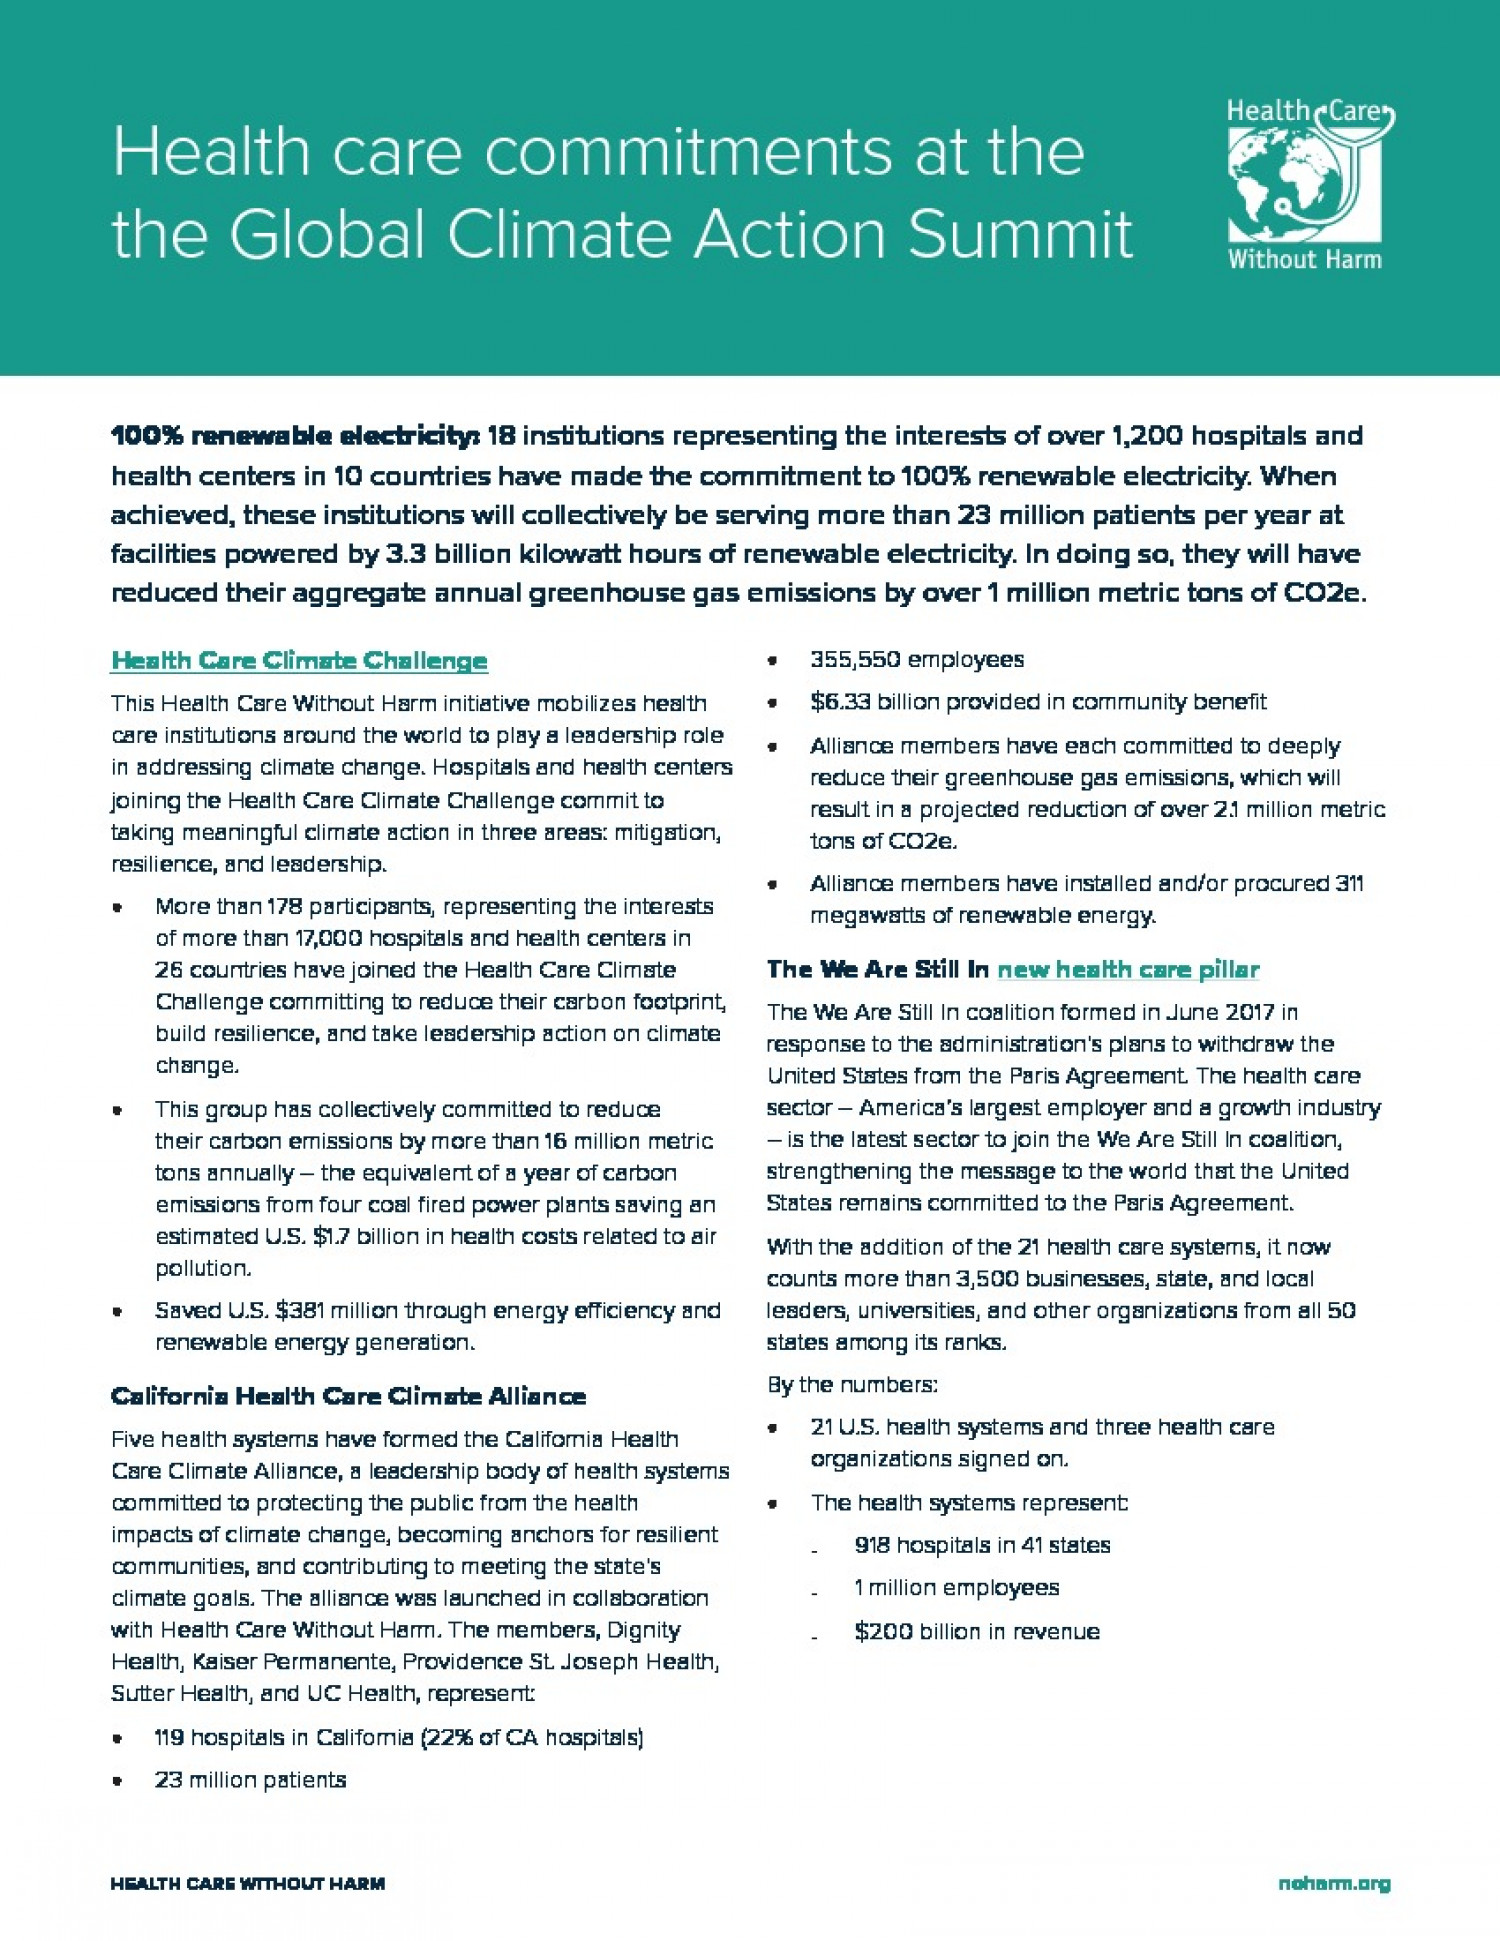 Health care climate commitments Infographic